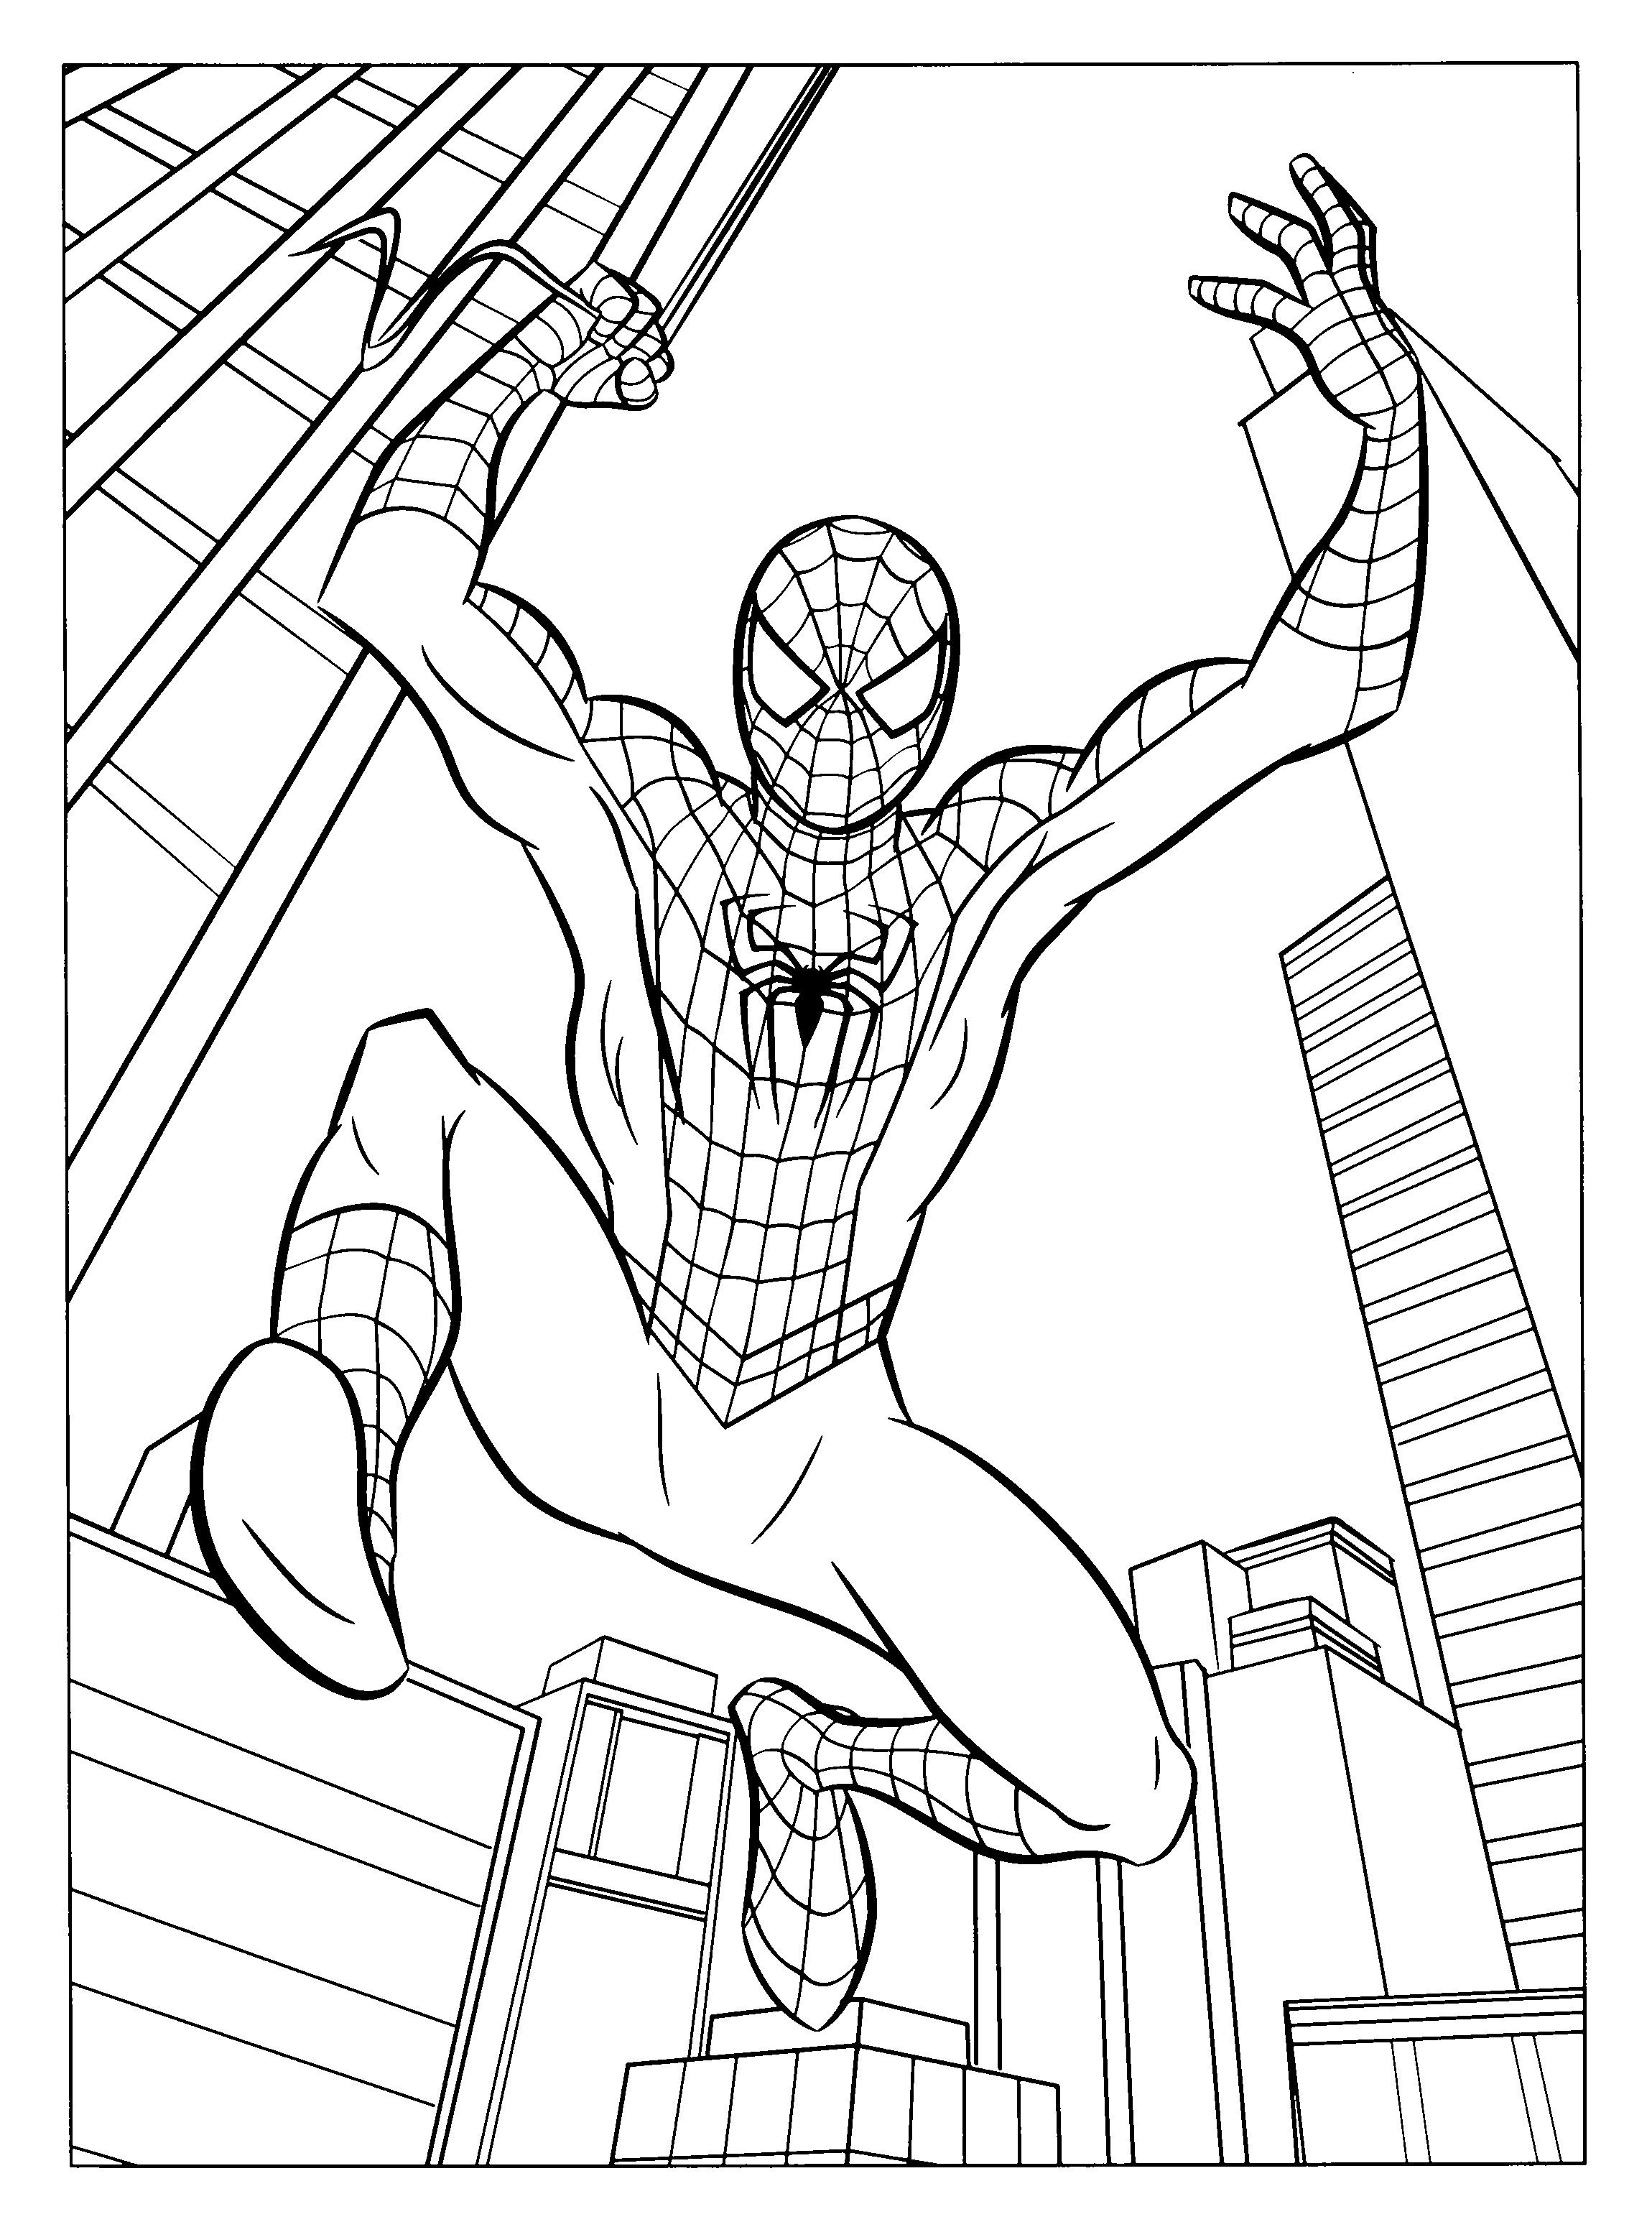 Spiderman Images To Color : spiderman, images, color, Printable, Spiderman, Coloring, Pages, Superhero, Pages,, Coloring,, Avengers